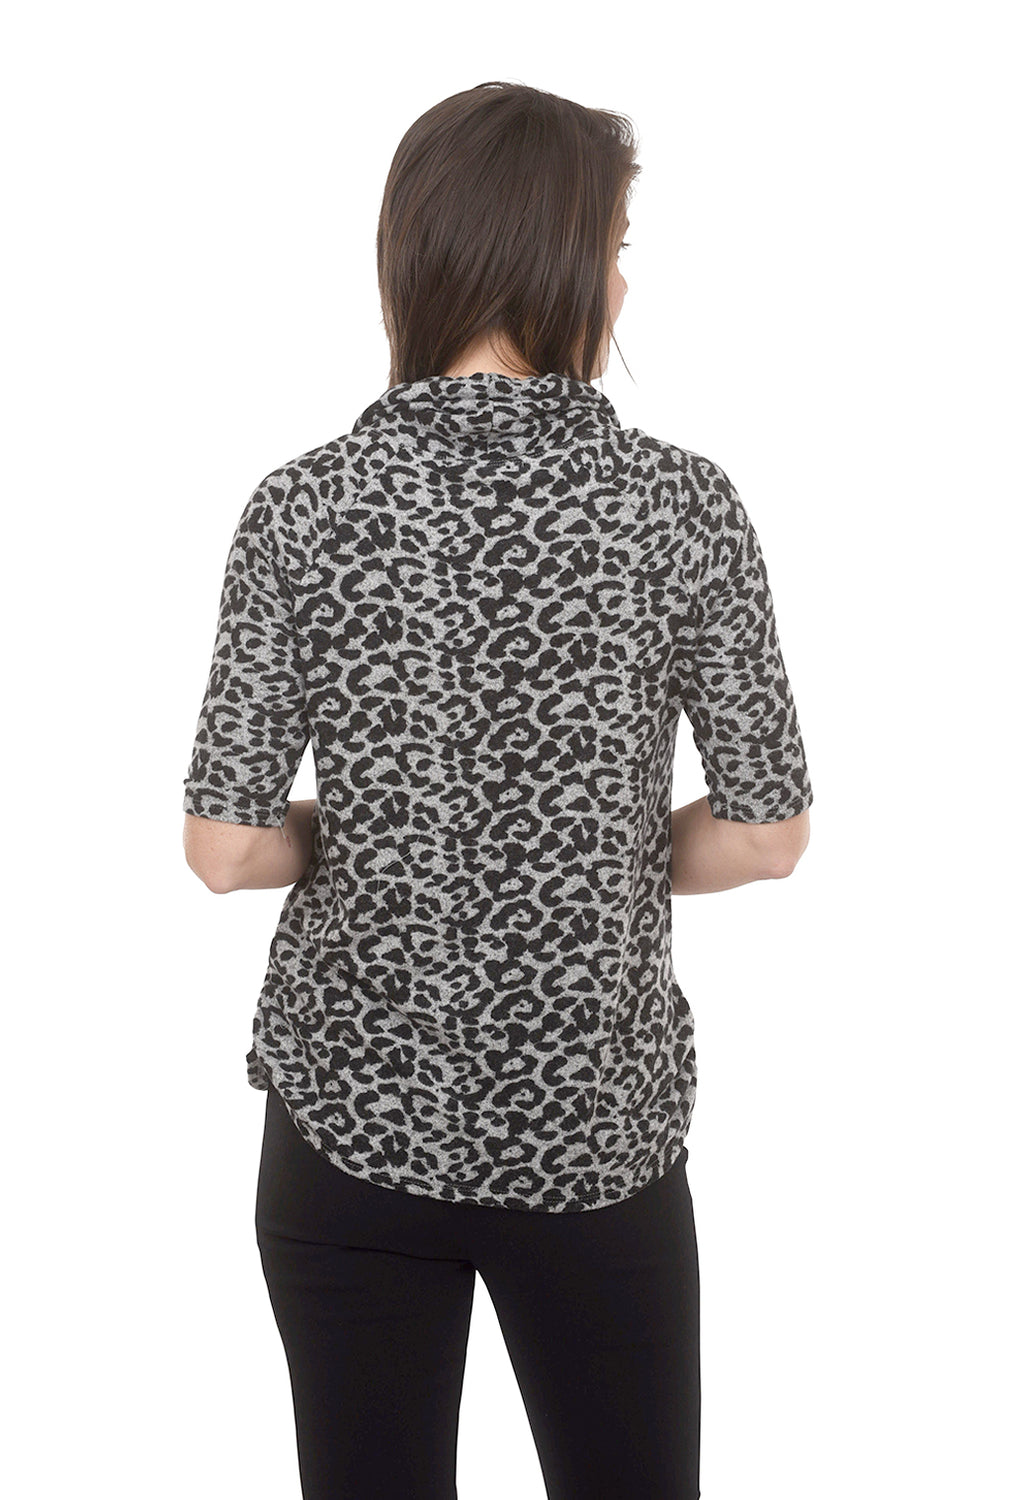 Coin1804 Leopard Print Cozy Top, Gray/Black